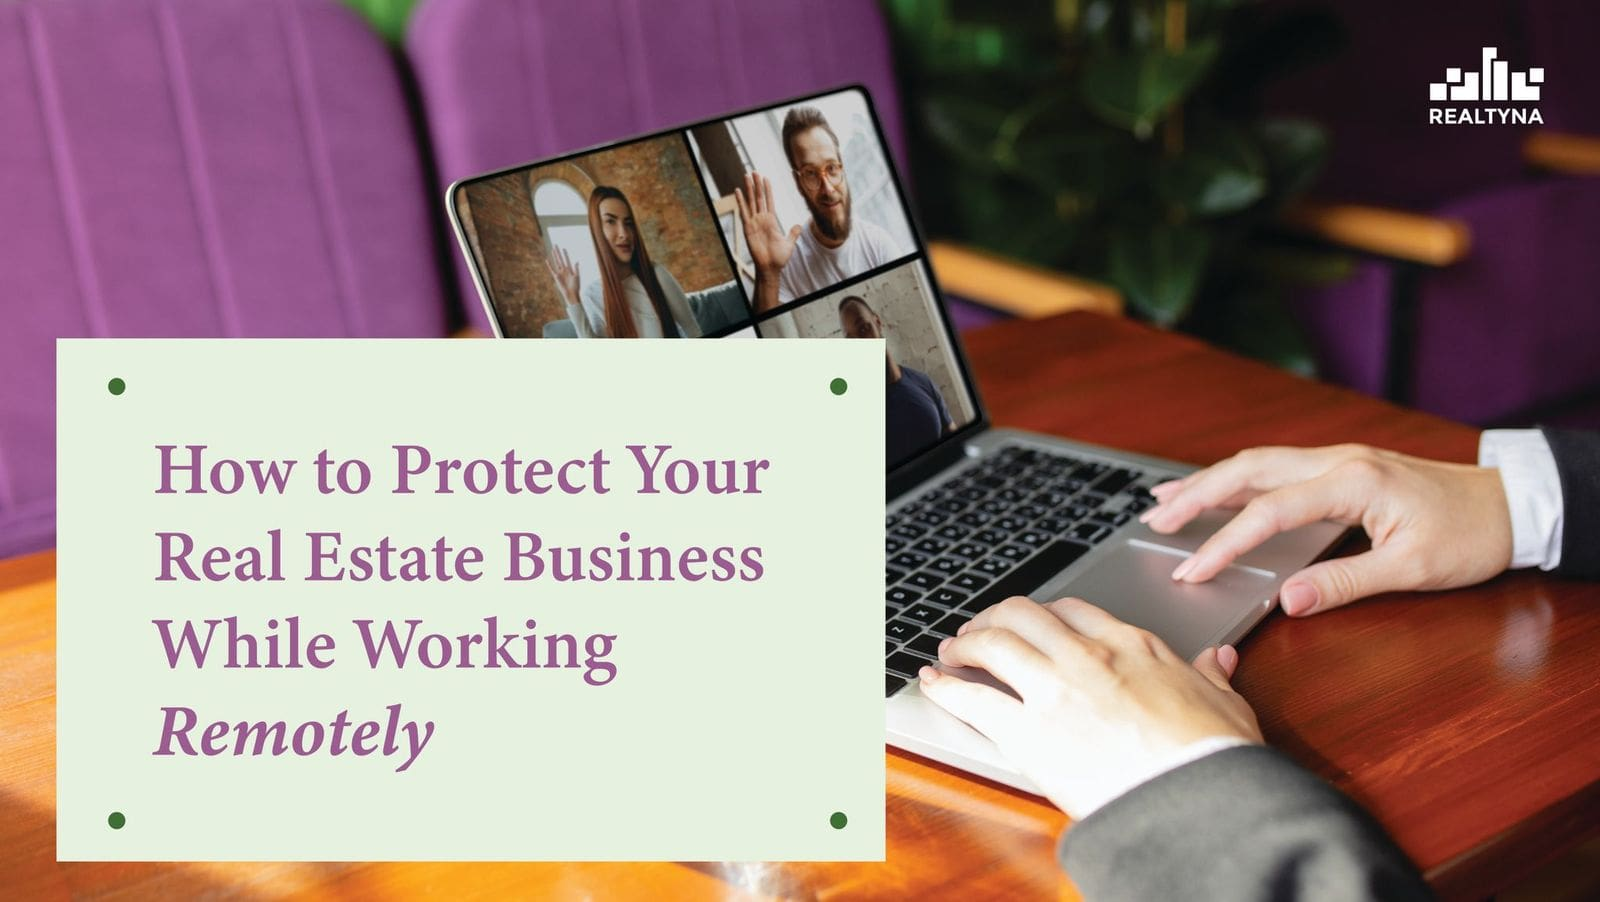 How to Protect Your Real Estate Business While Working Remotely